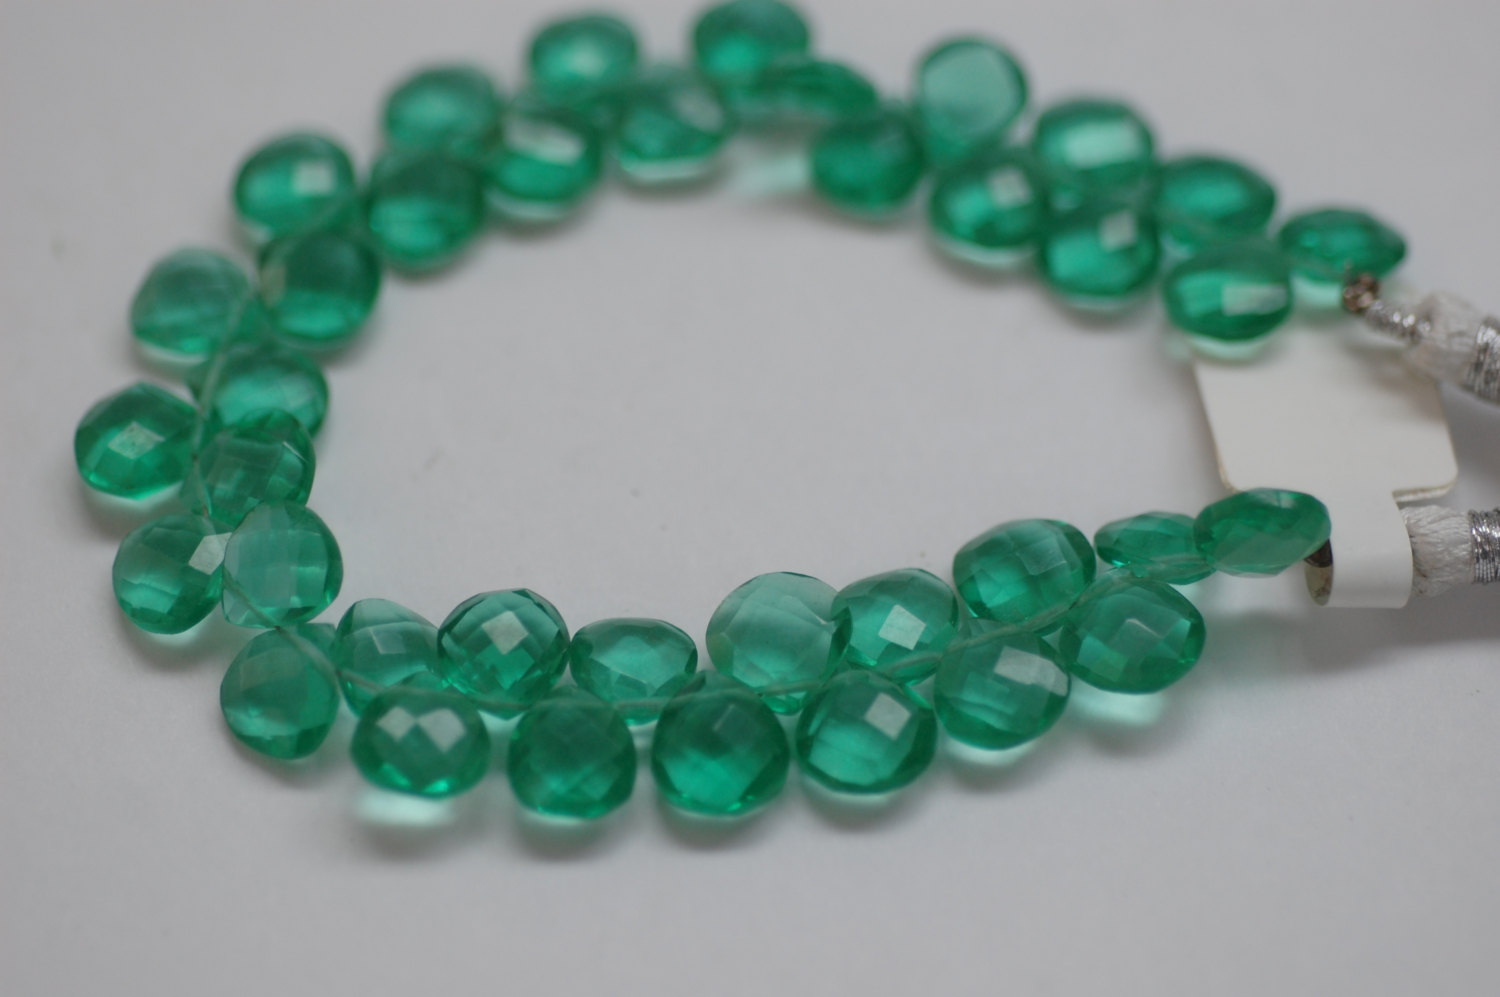 Hydro Quartz Green Hearts Faceted